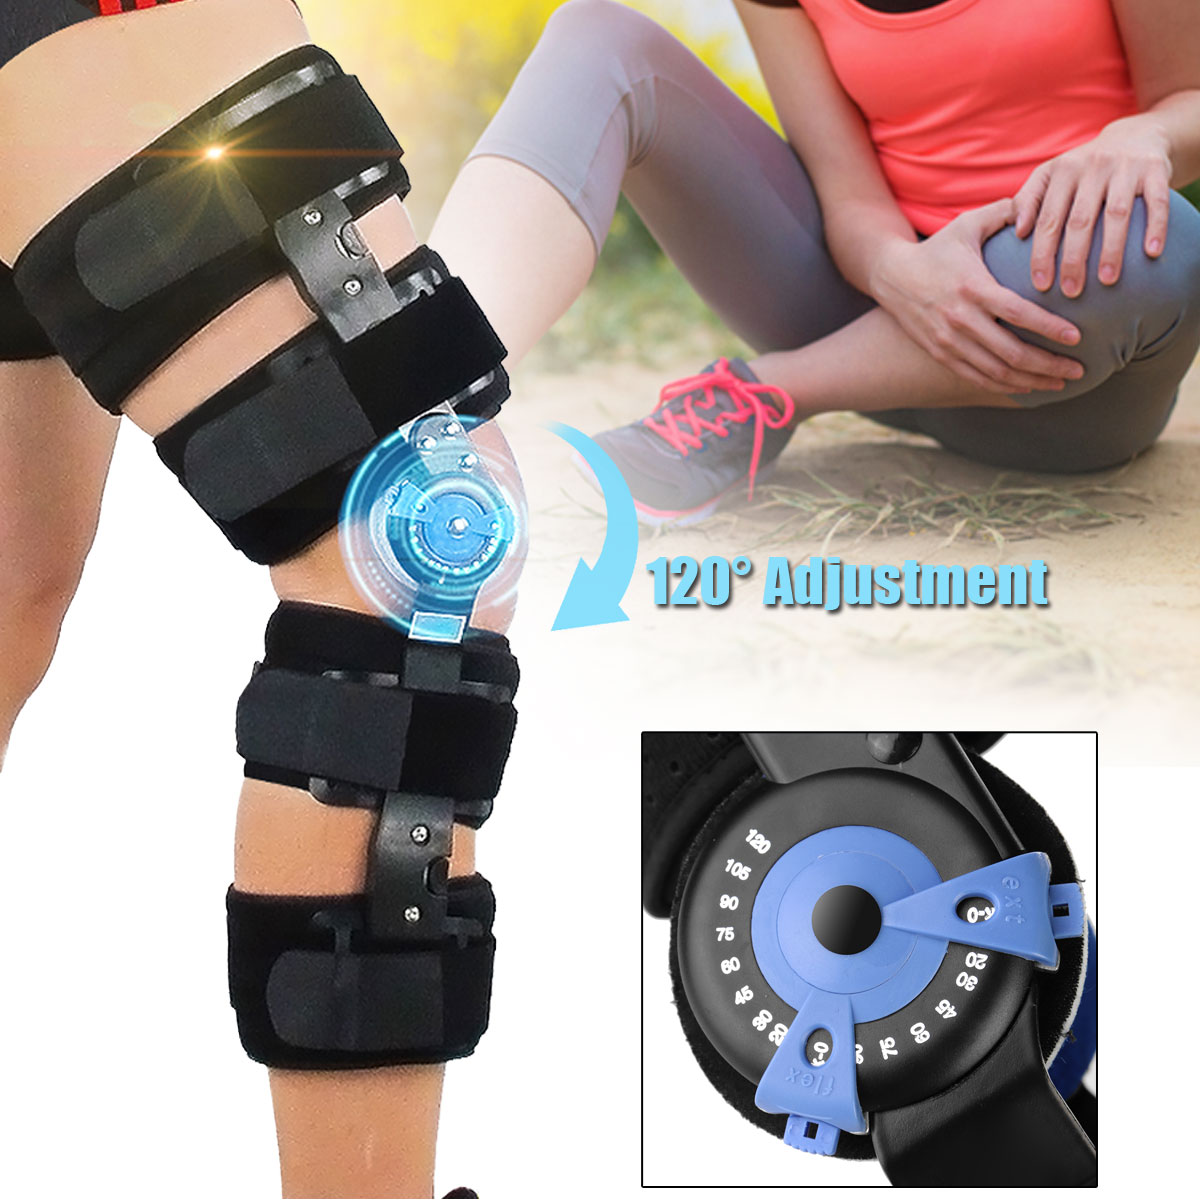 KIFIT ROM Medical Grade 0-120 Degrees Adjustable Hinged Knee Leg Brace Support & Protect Knee kifit rom medical grade 0 120 degrees adjustable hinged knee leg brace support